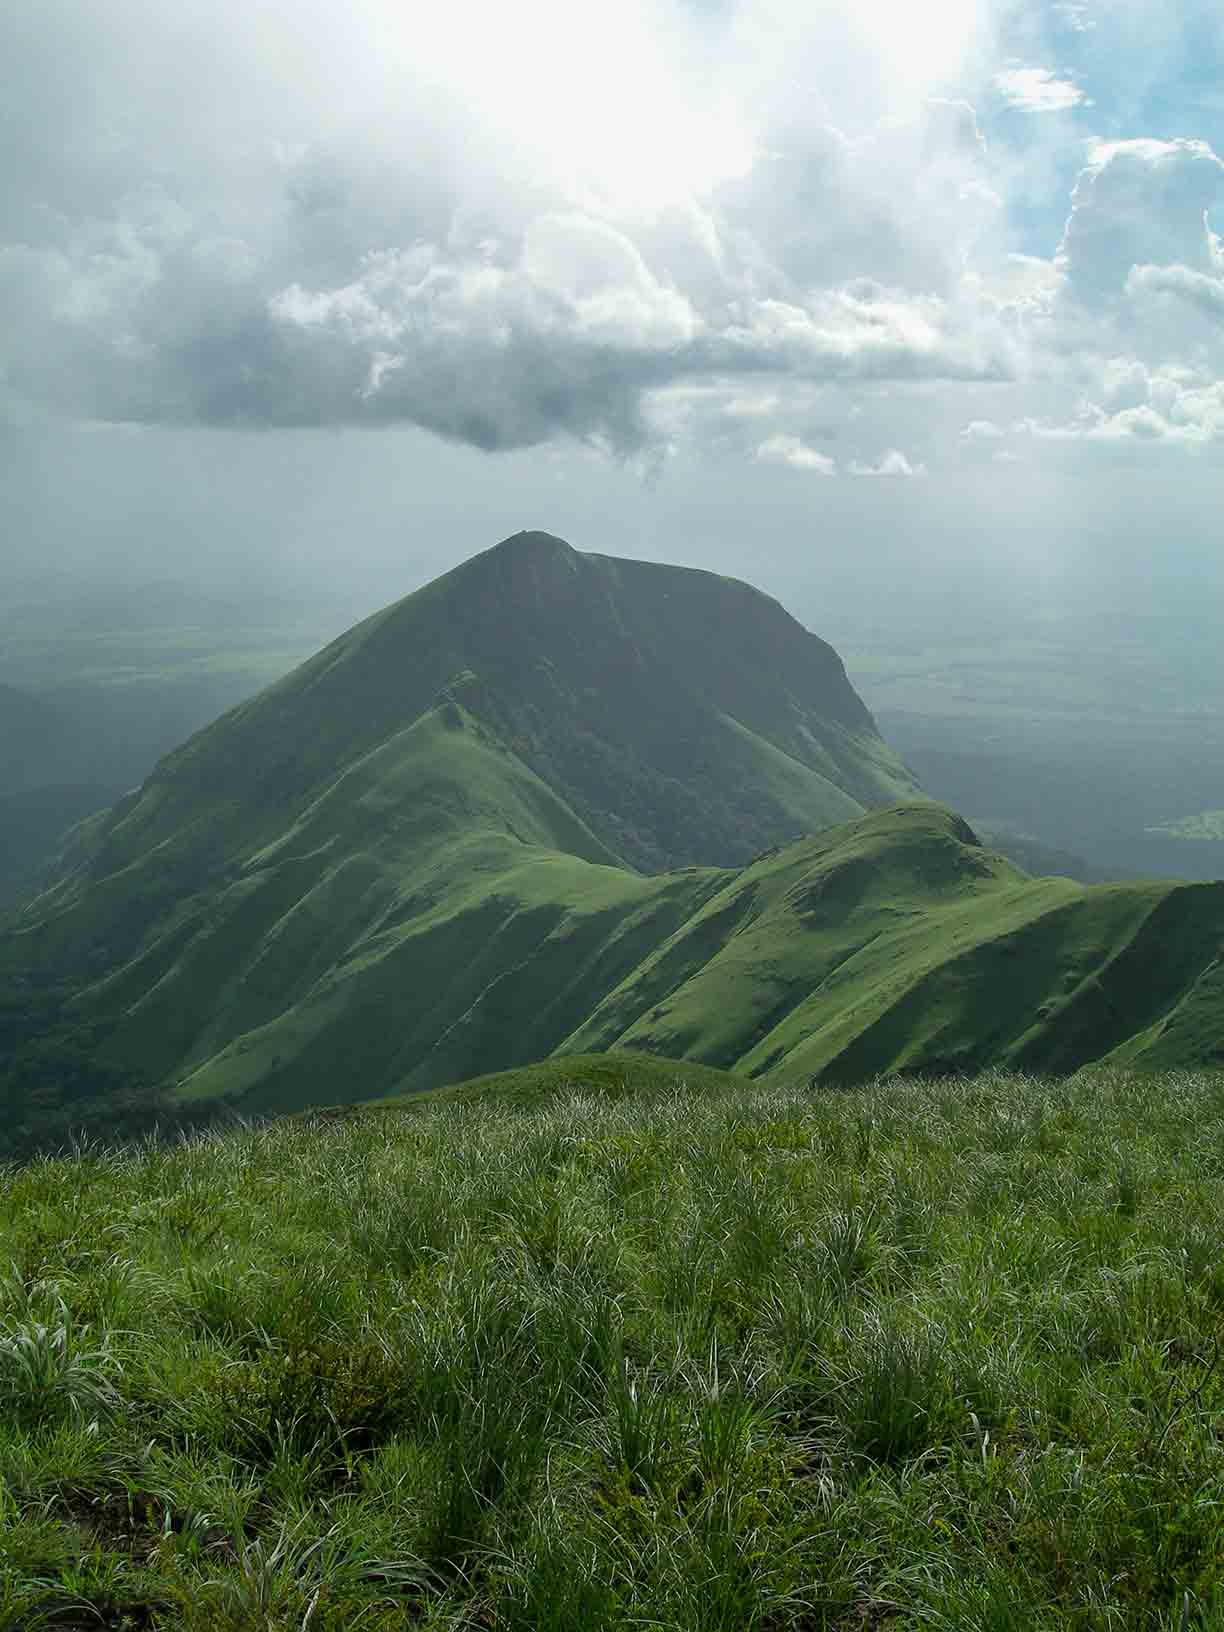 Mount Nimba the border of Ivory Coast and Guinea in West Africa